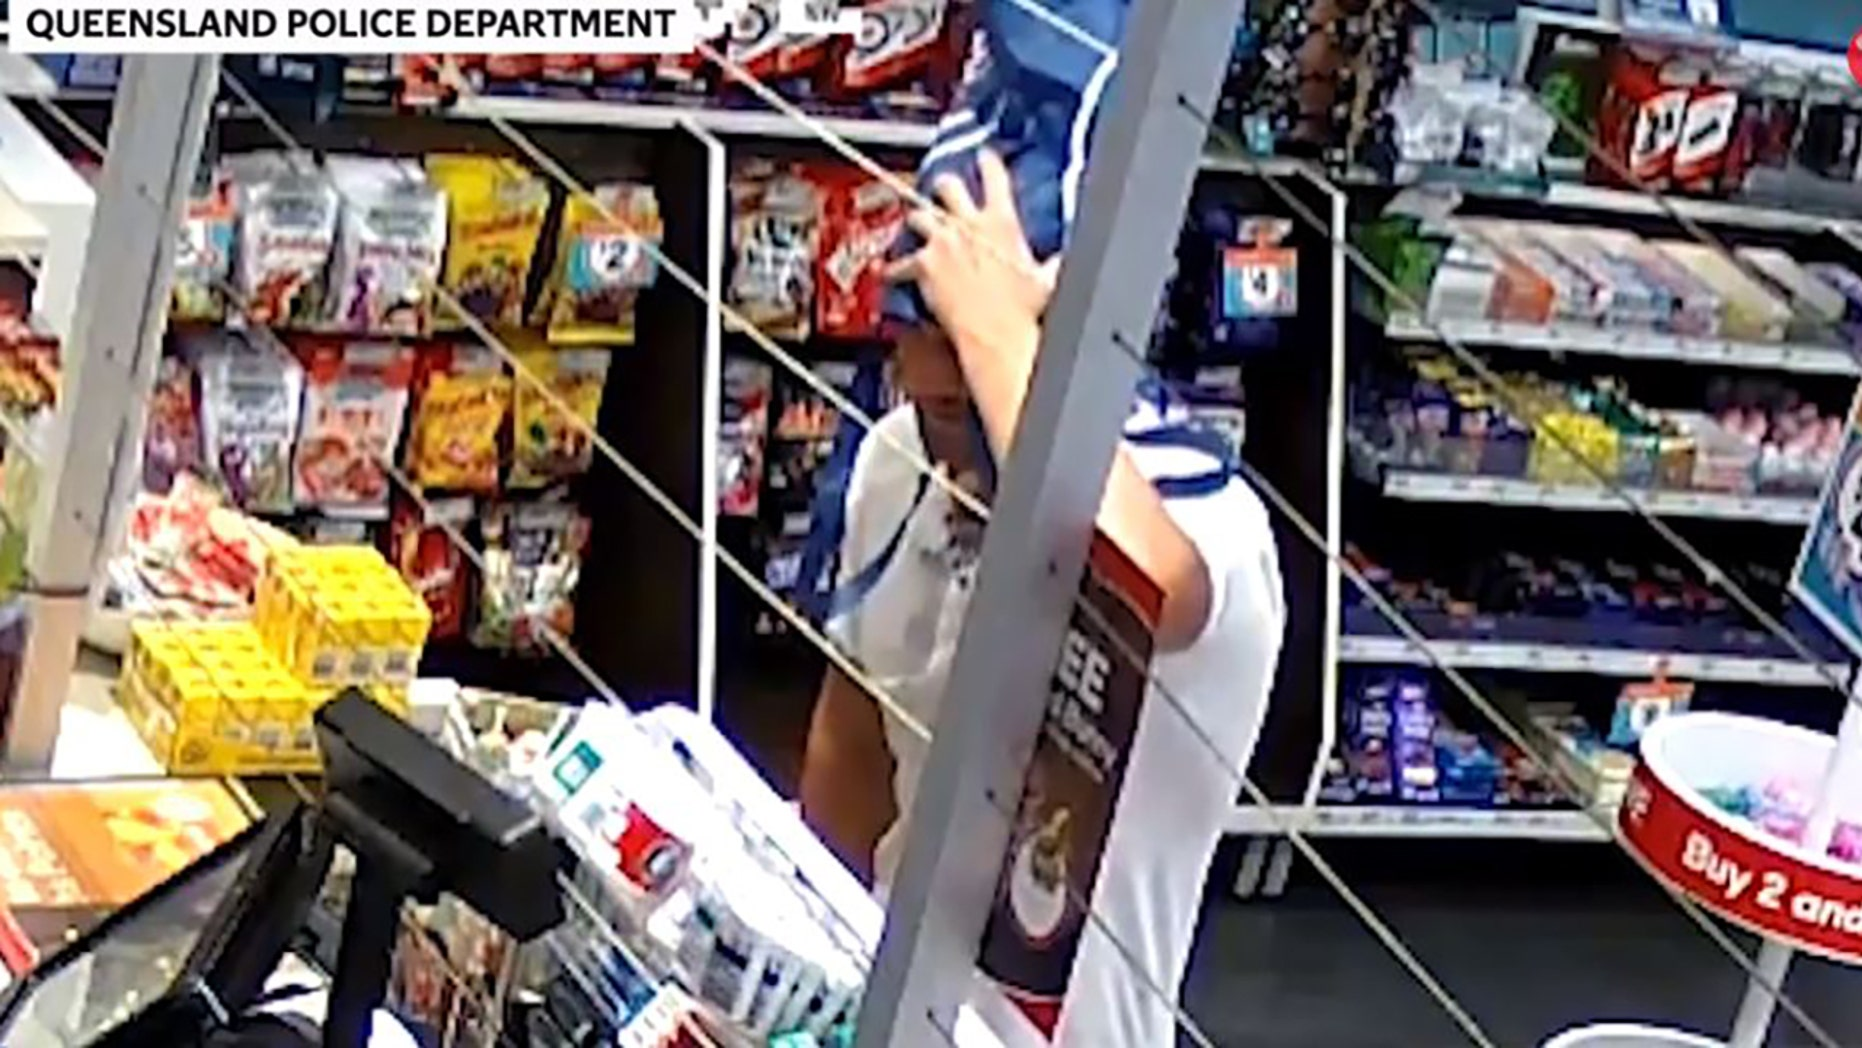 CCTV footage showed a man rob a gas station in Australia with a reusable shopping bag over his head, police said.